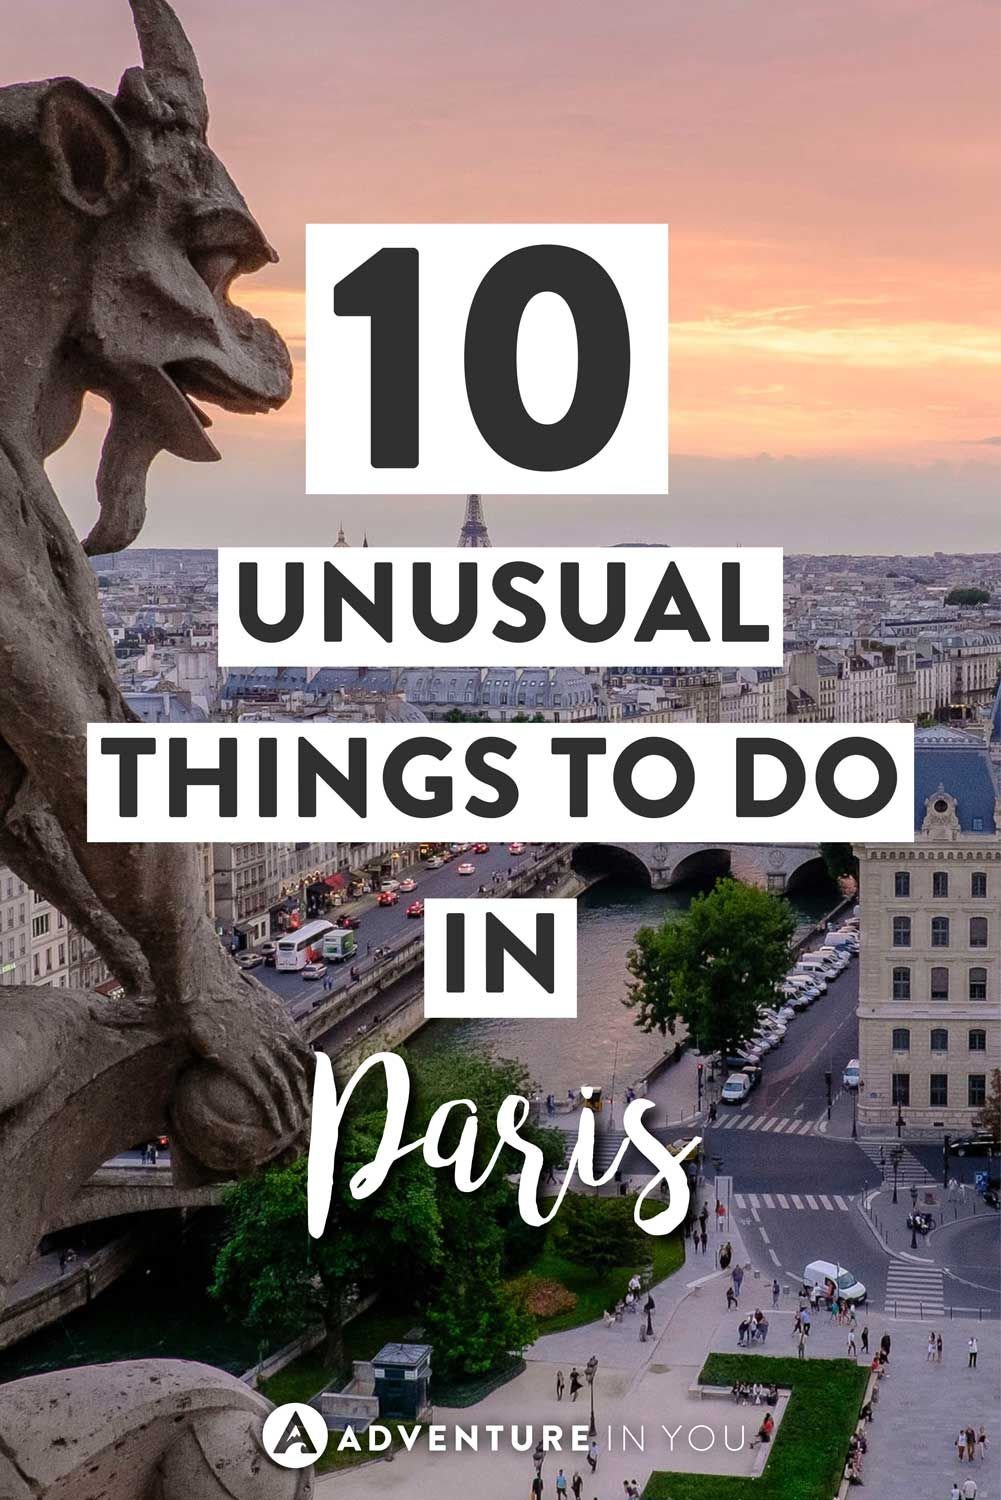 Paris Travel   Looking for unusual things to do in Paris? Check out this guide on the best things to do in Paris aside from museums and shopping. #paris #france #europe